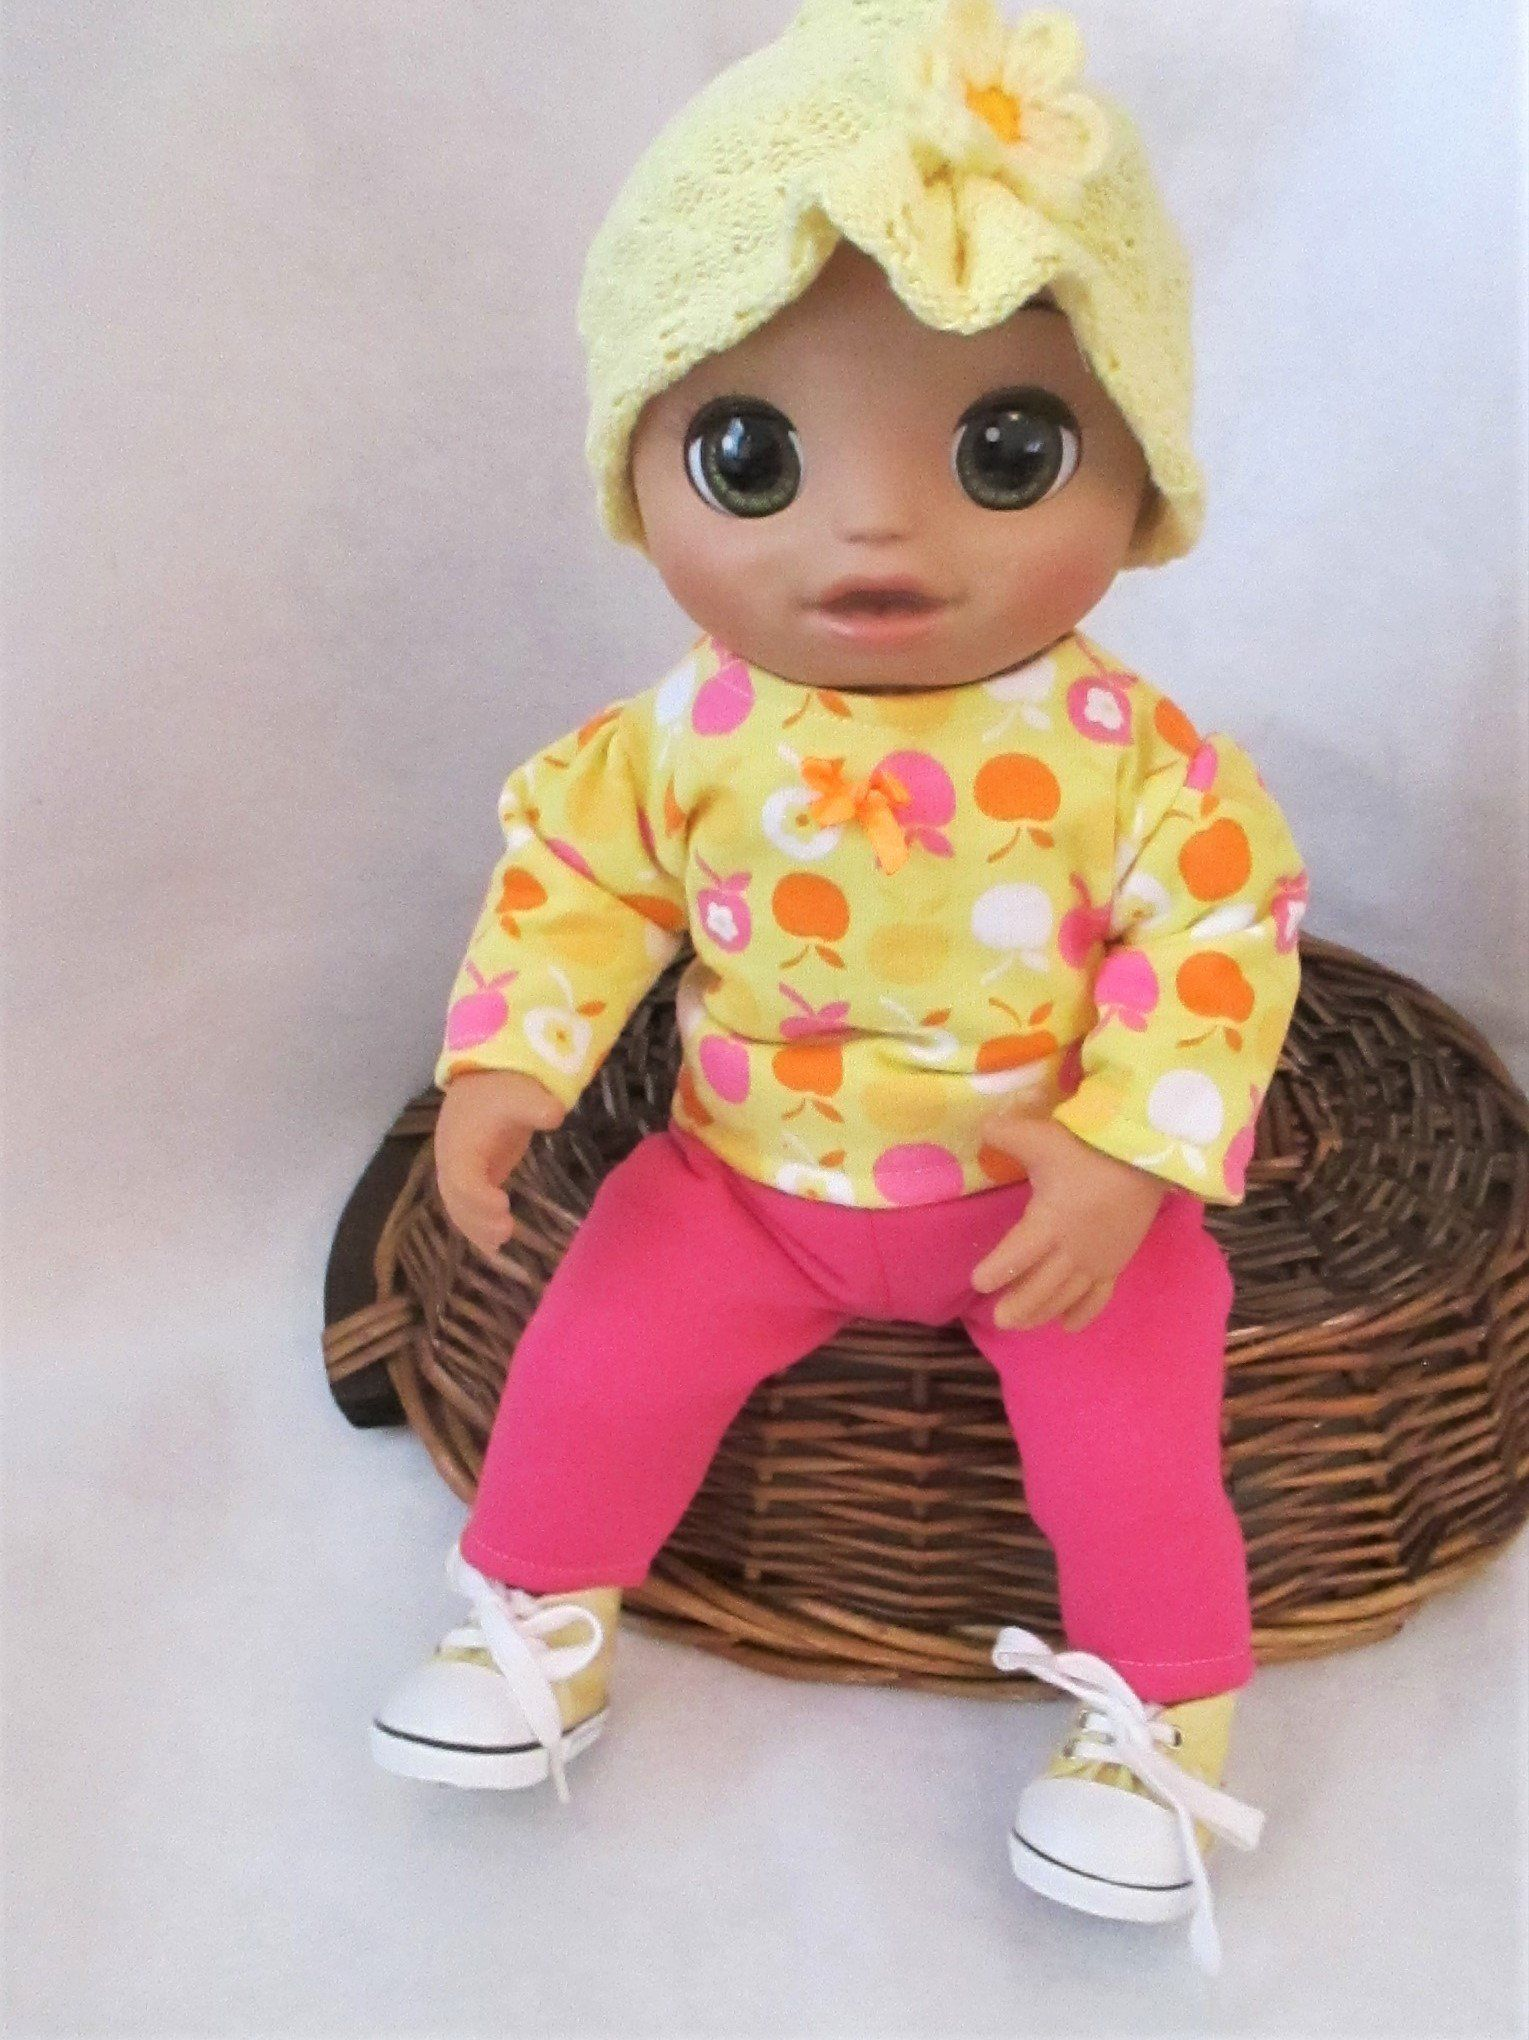 Baby Alive Real As Can Be Clothes Size : alive, clothes, Alive, Clothes, Apple, Clothes,, Alive,, Dolls